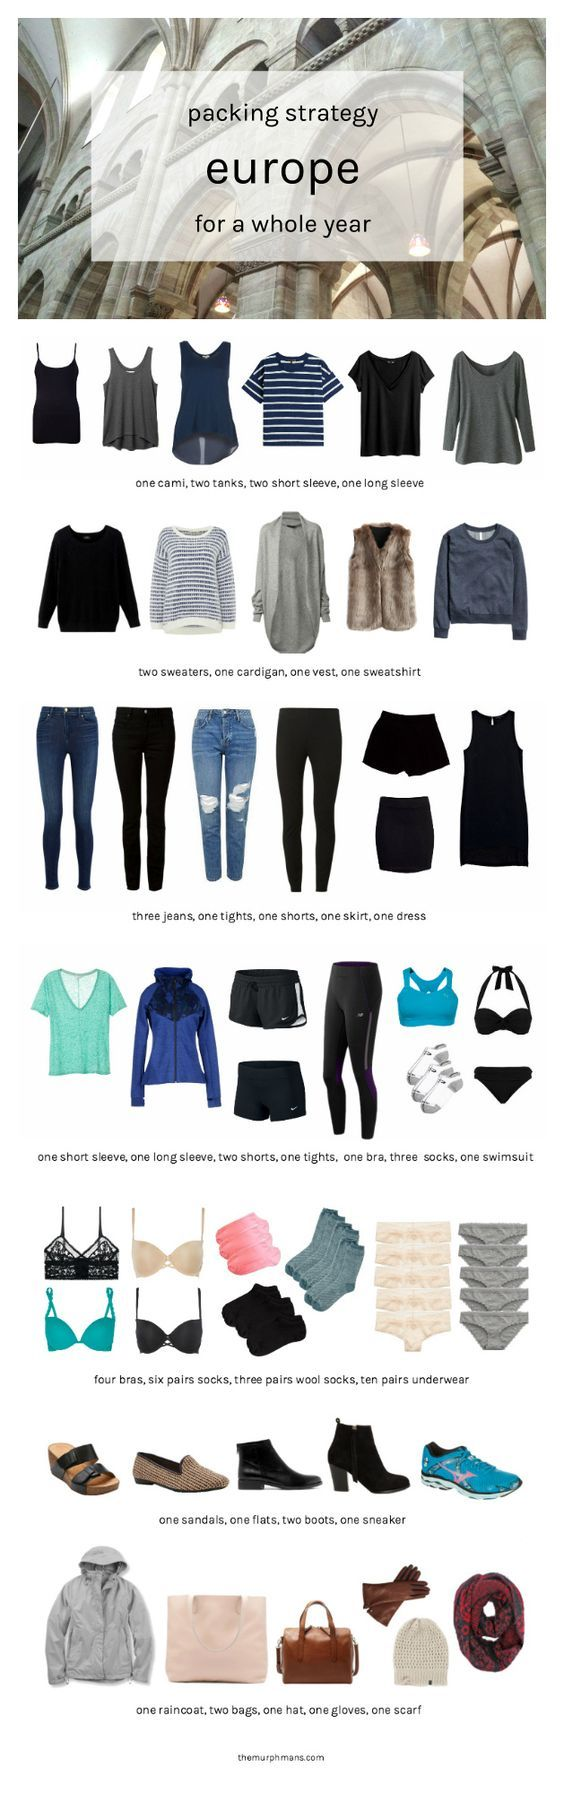 Our packing strategy for a whole year traveling in Europe.. photos and explanations! All seasons- winter, spring, summer, fall- a year long capsule wardrobe.